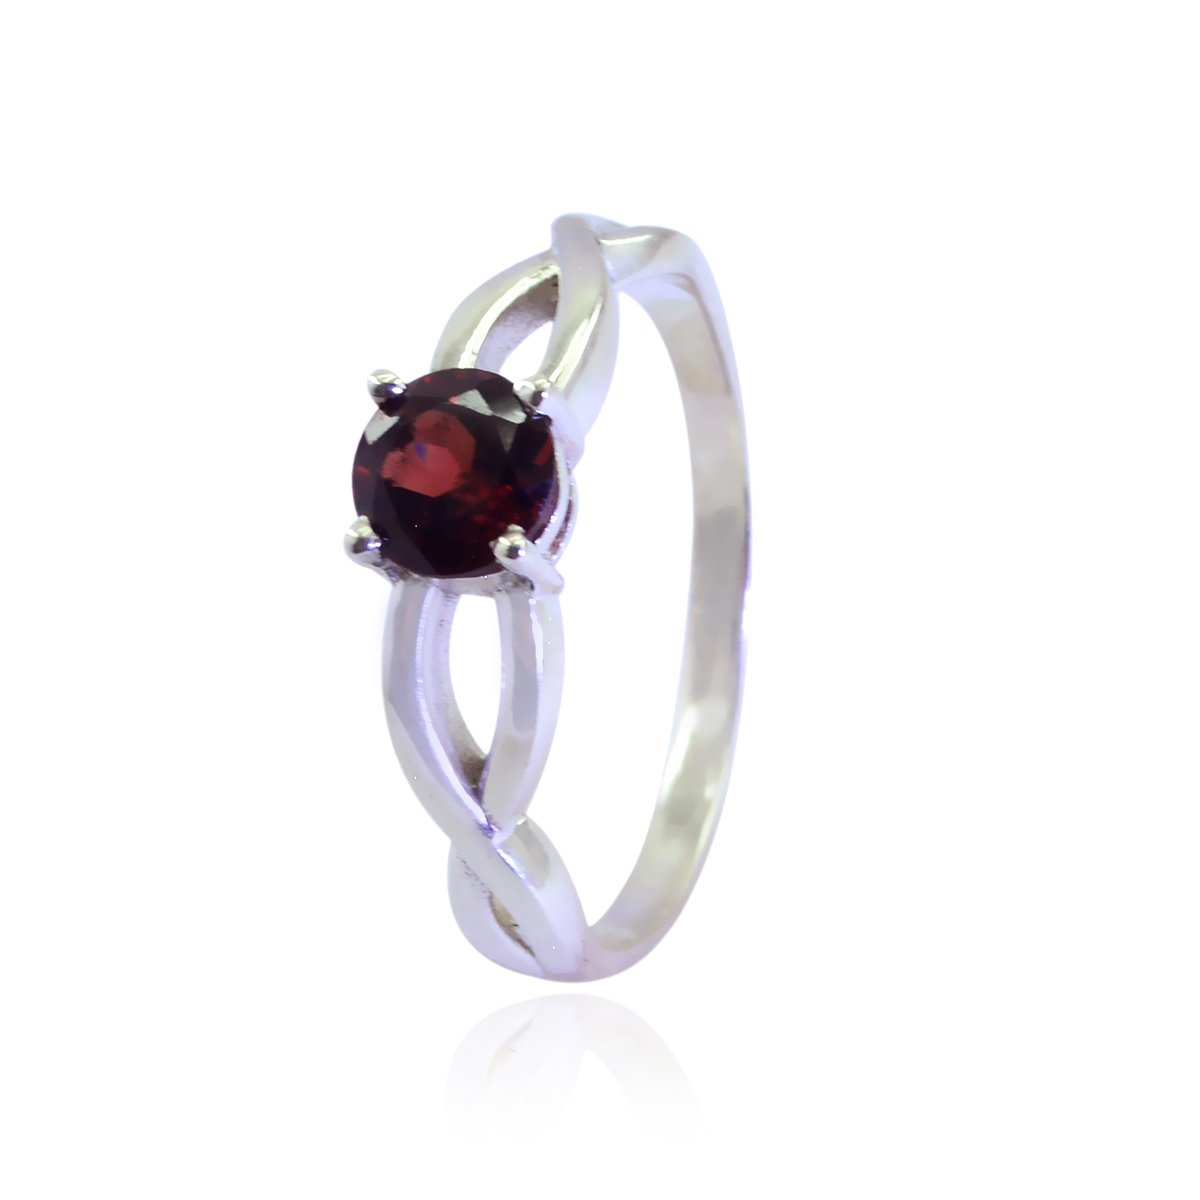 Lucky Gemstone Round Faceted Garnet Ring Sterling Silver Red Garnet Lucky Gemstone Ring fine Jewellery Shops Gift for Mothers Day Initial Ring